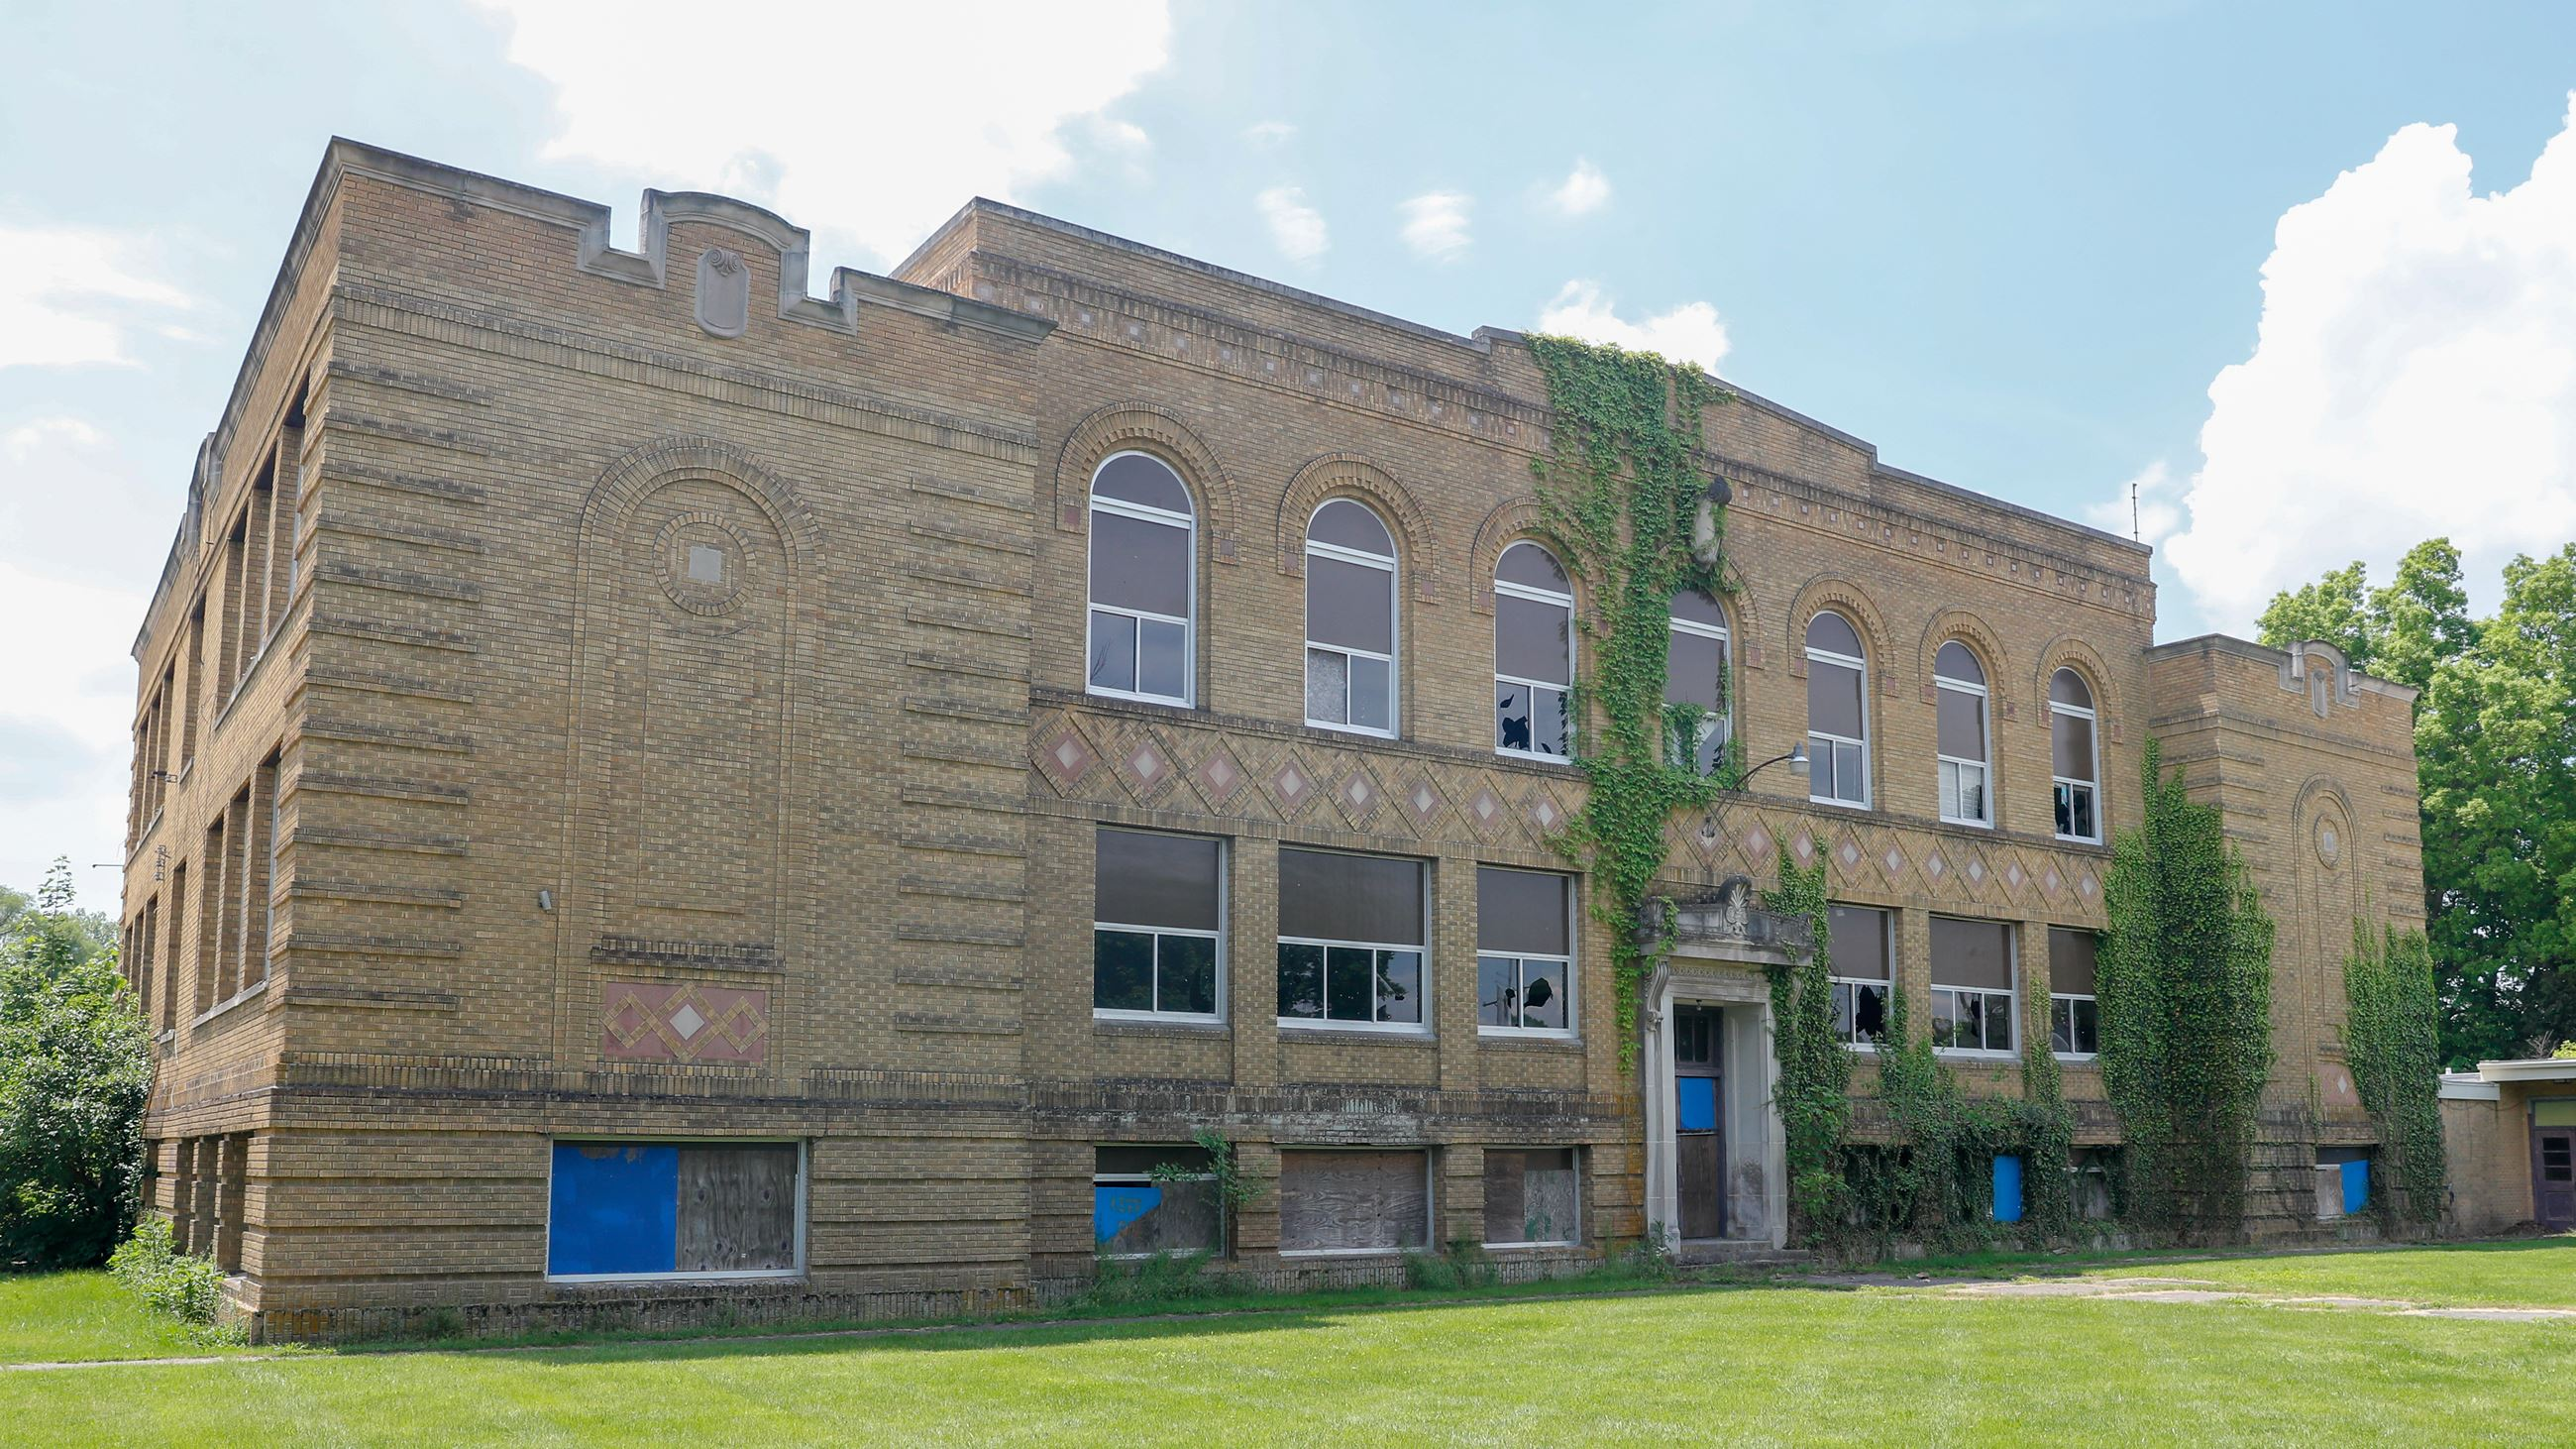 The former Madison Street School in New Carlisle.